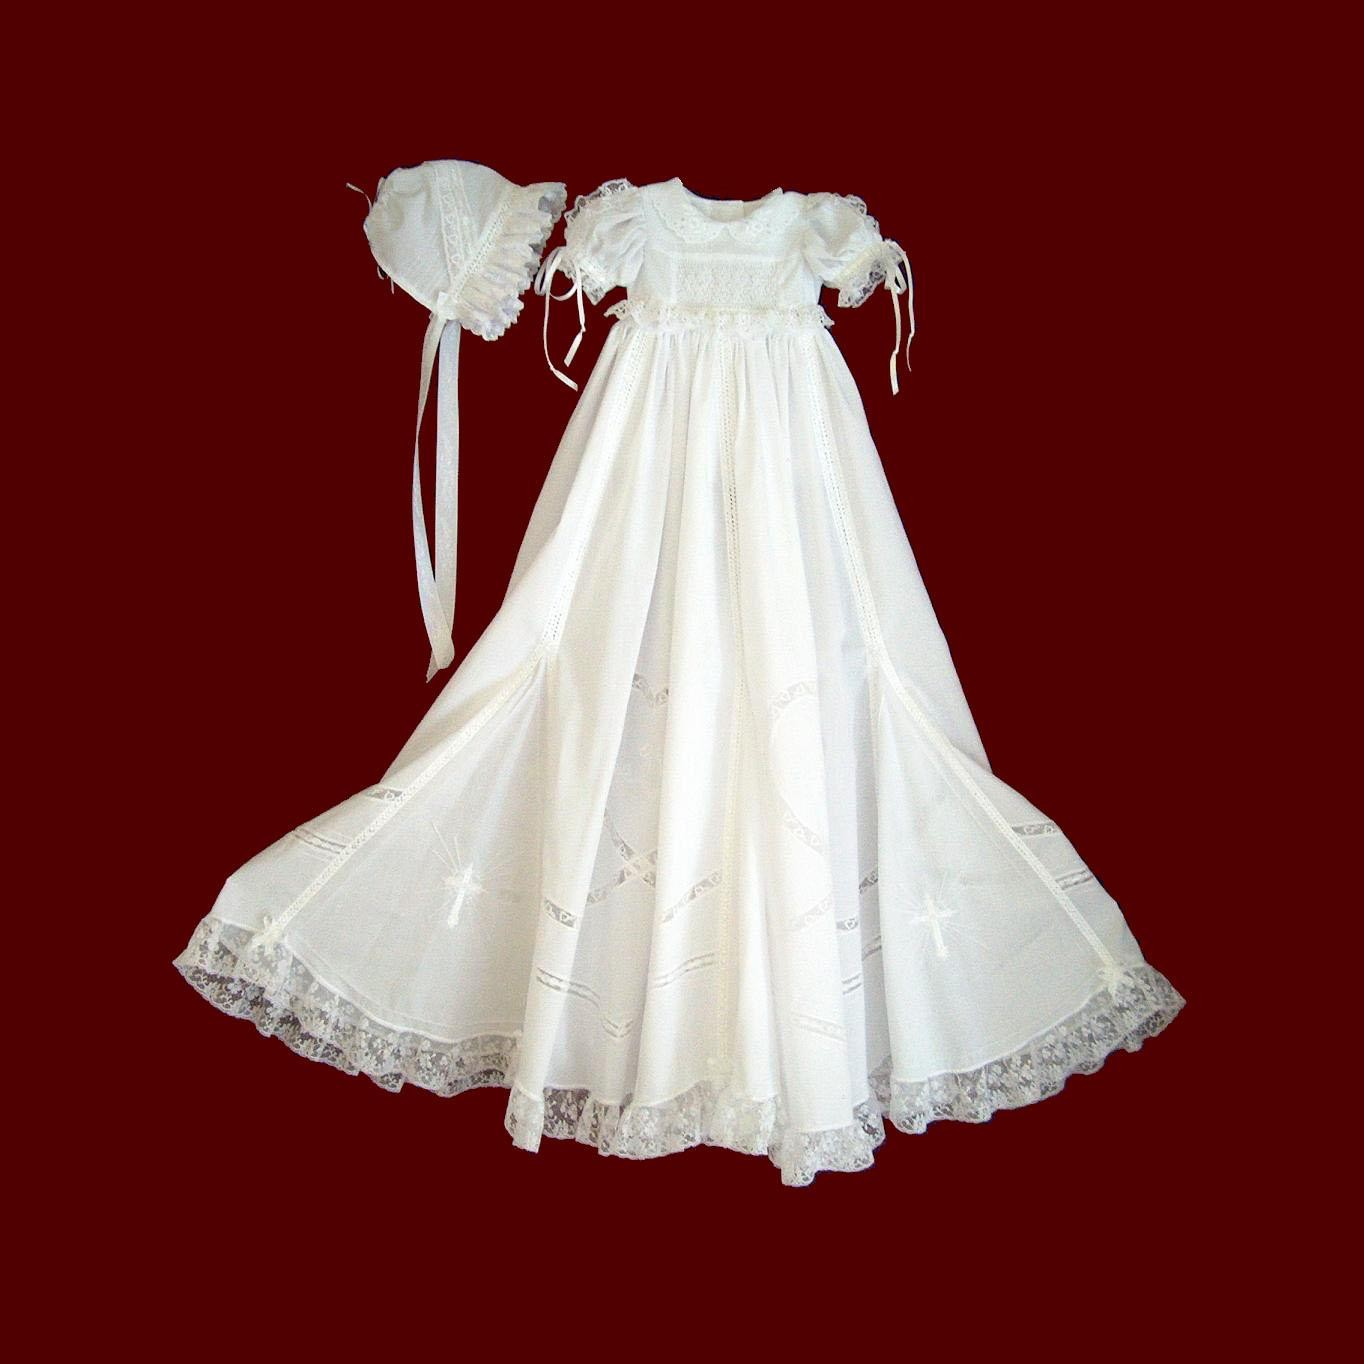 Elaborate Smocked & Embroidered Girls Christening Ensemble & Accessories